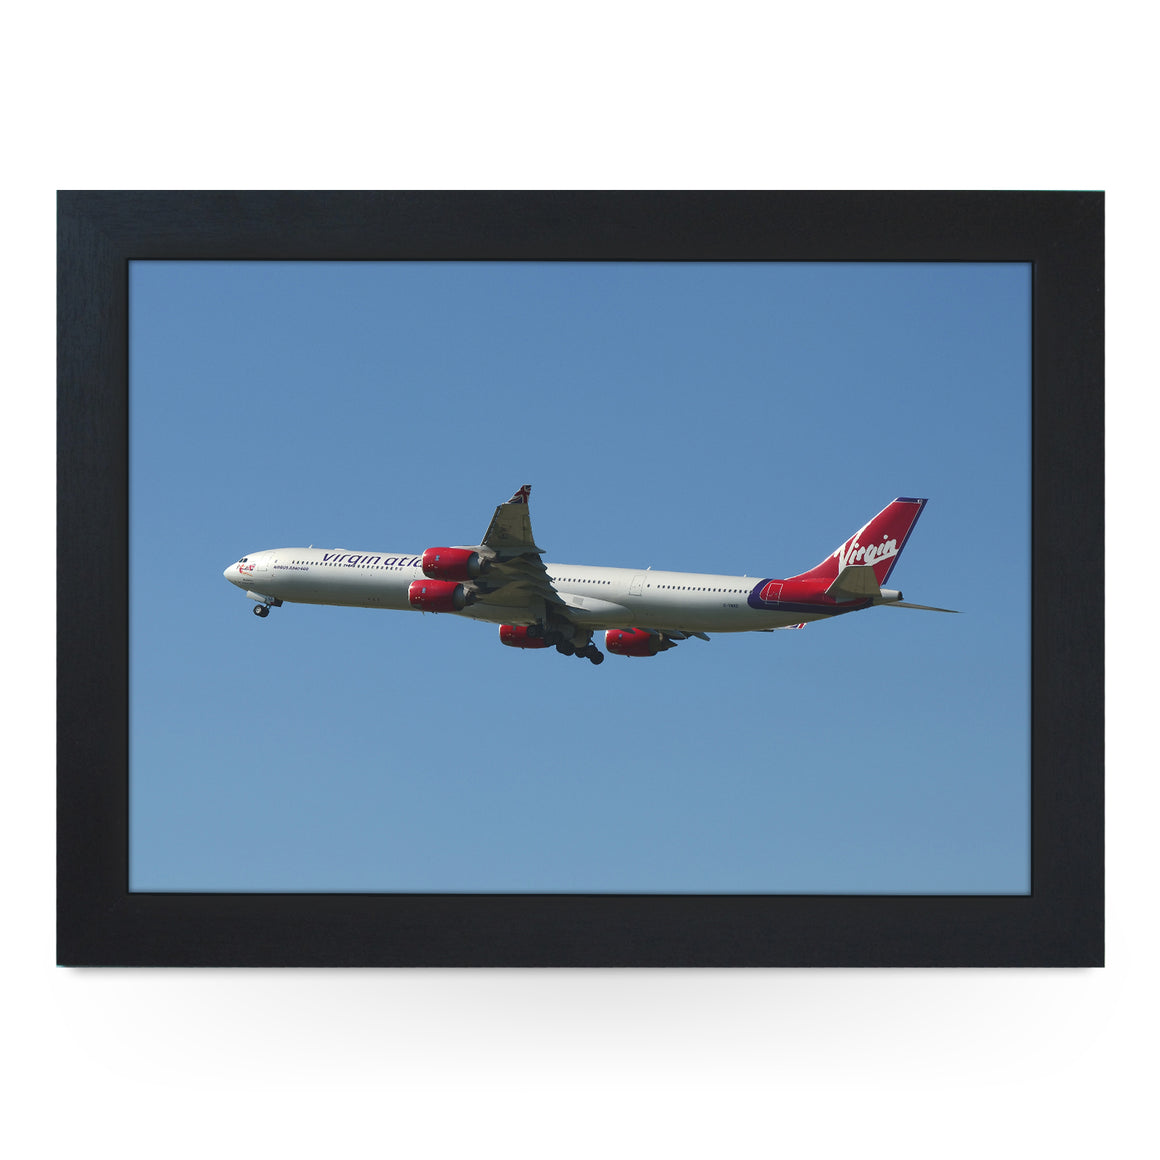 Airbus A340 Plane Lap Tray - AD13516